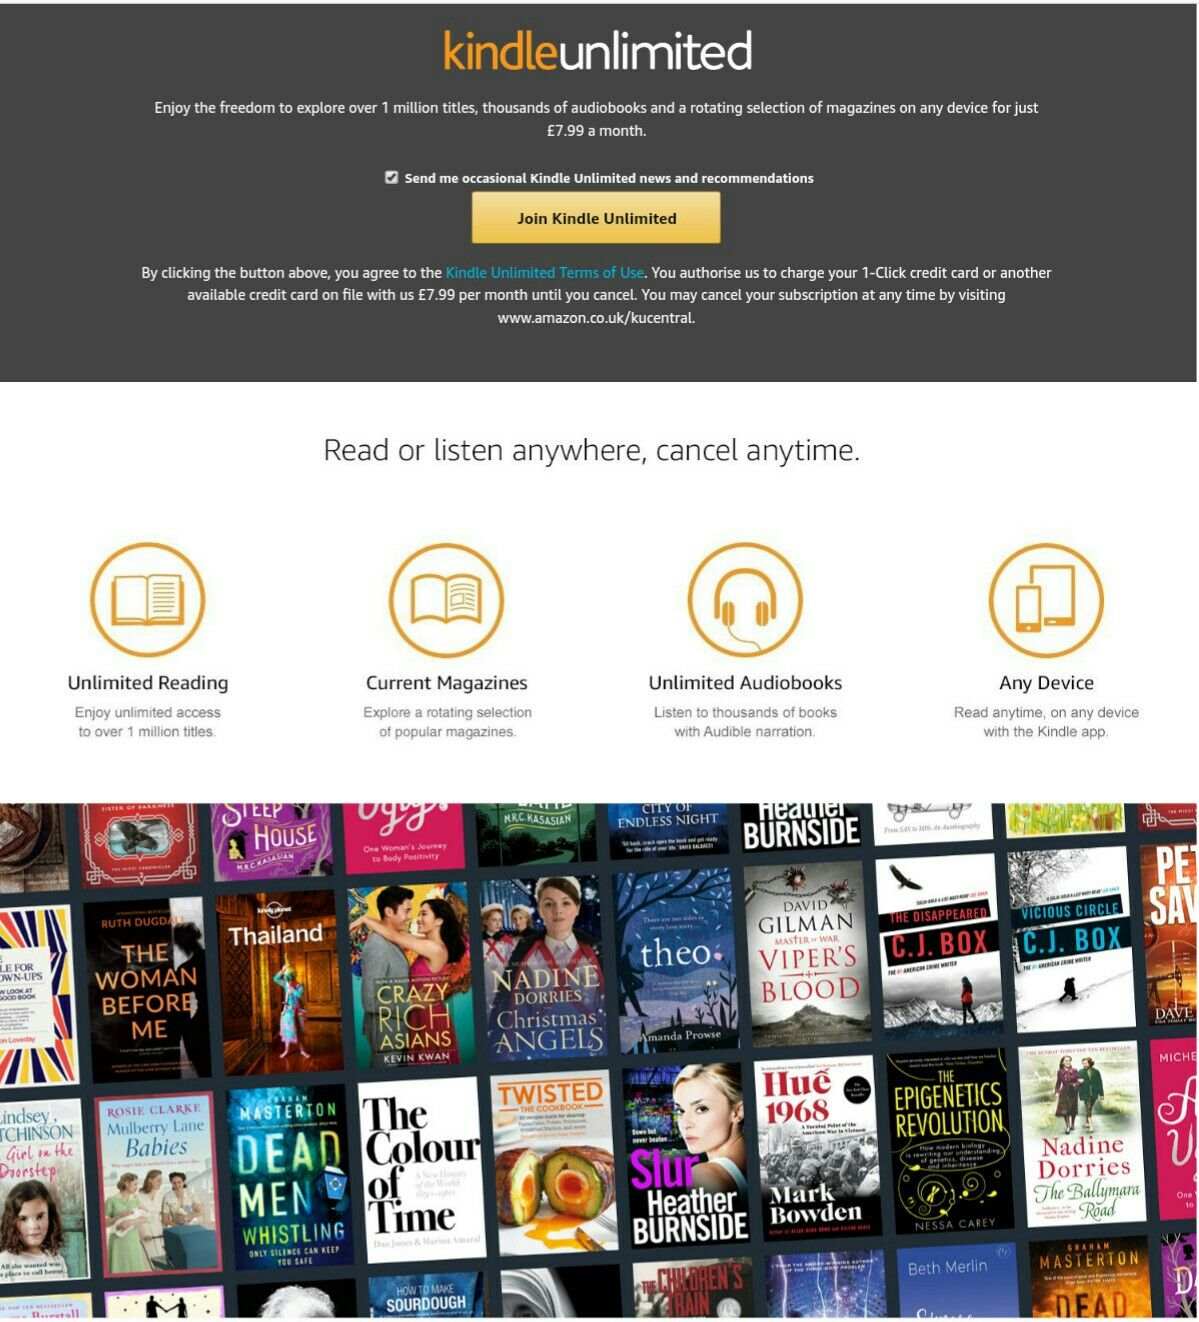 30 Day FREE Kindle Unlimited trial  The Kindle Unlimited